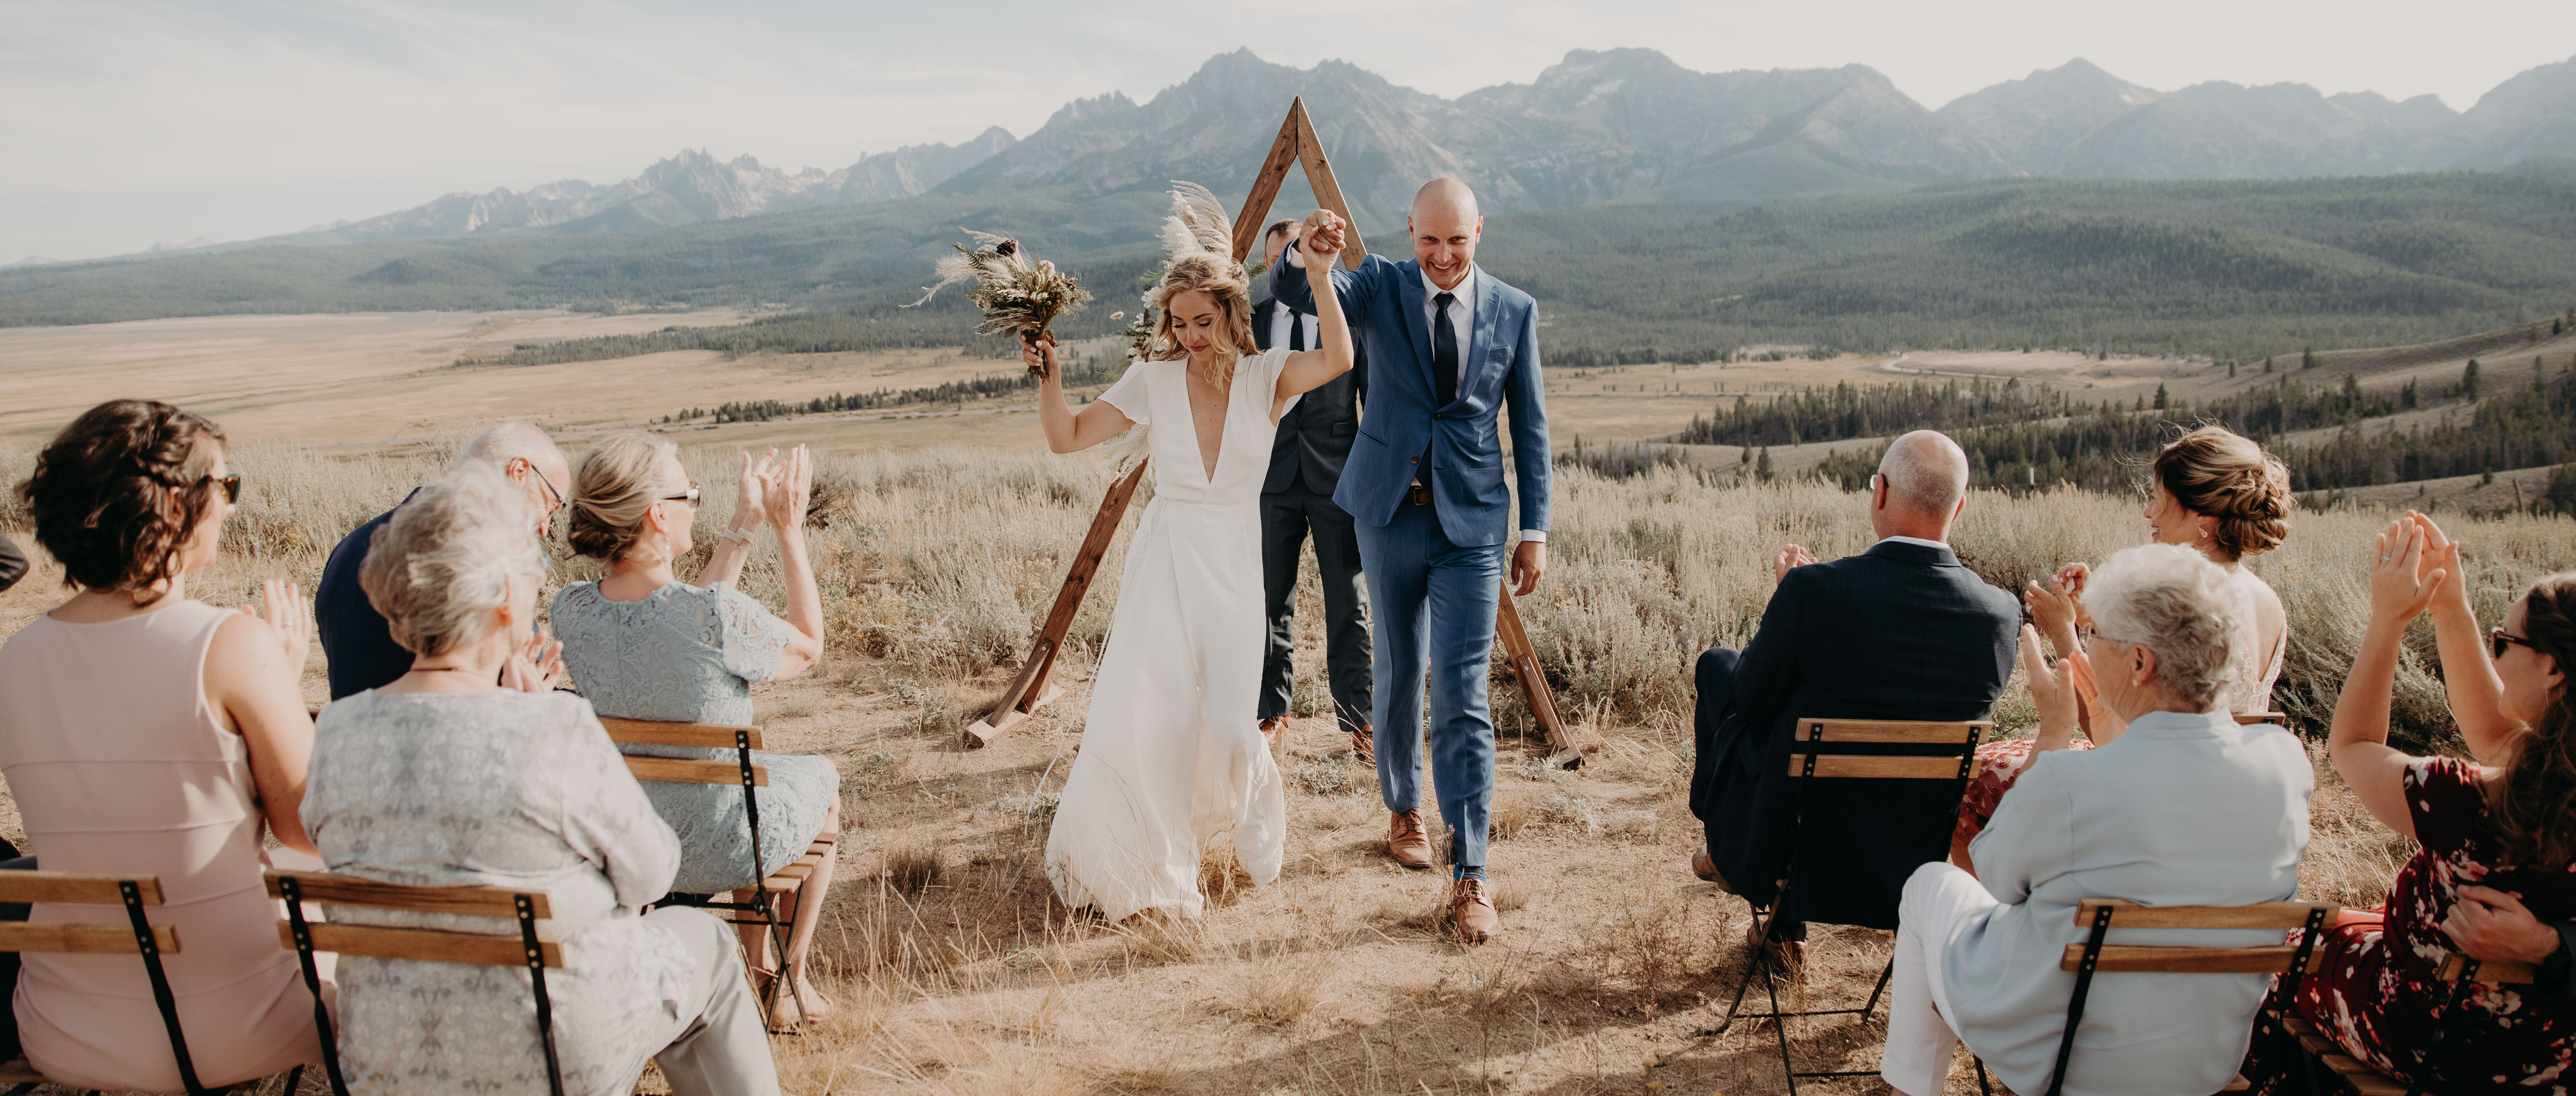 Tia + Alex | Stanley, Idaho | Sawtooth Mountains